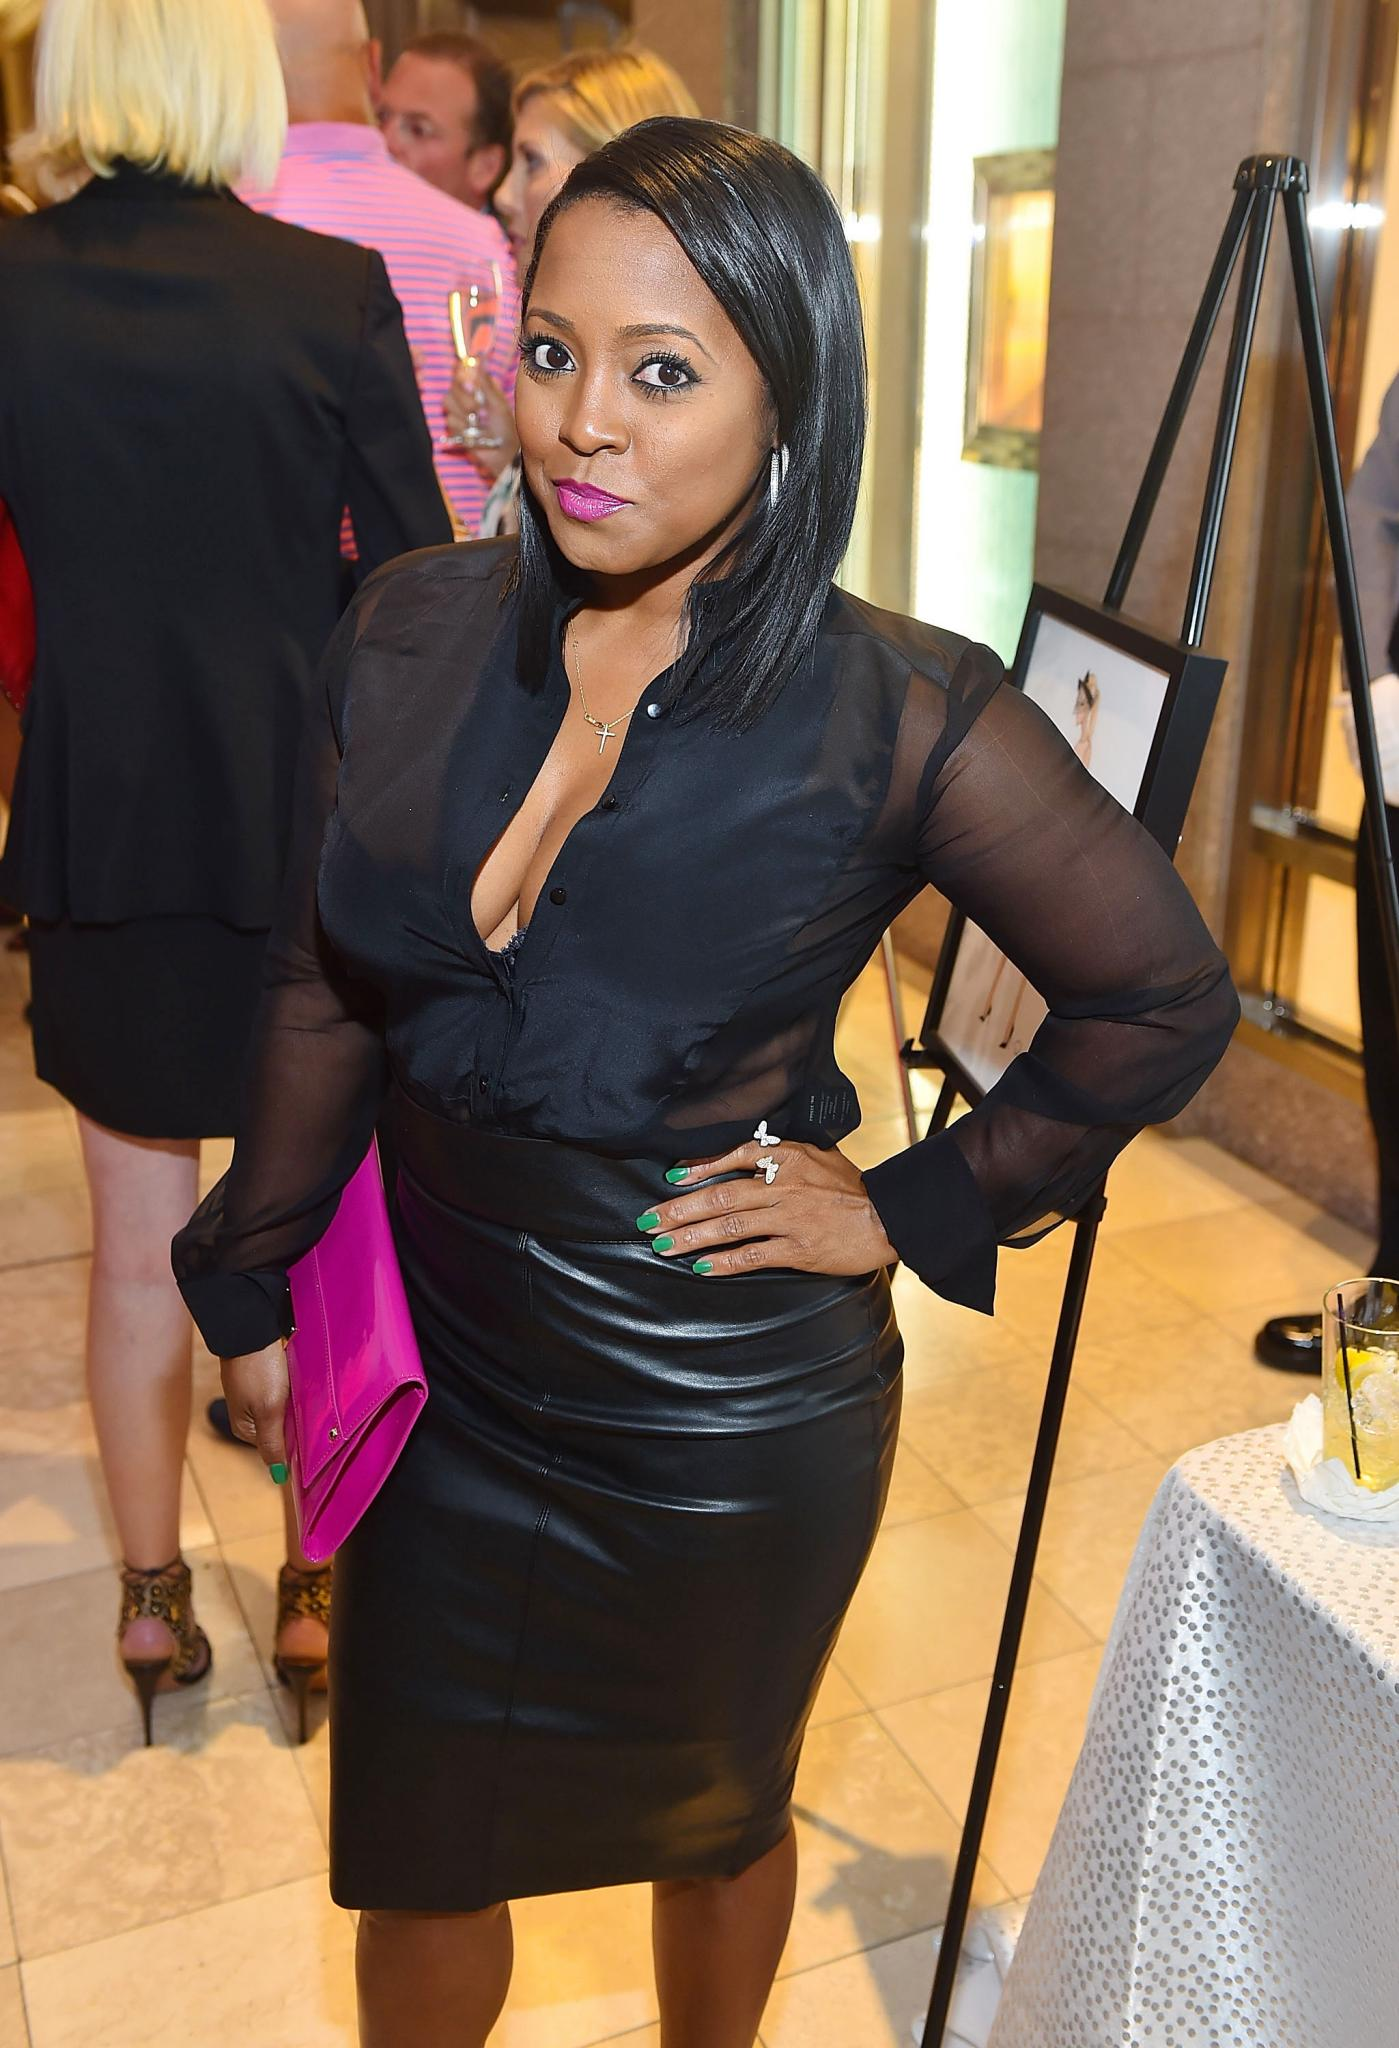 Keshia Knight-Pulliam on 'Cosby Show' Legacy: 'It's Going to be Difficult to Take Back Those Memories'